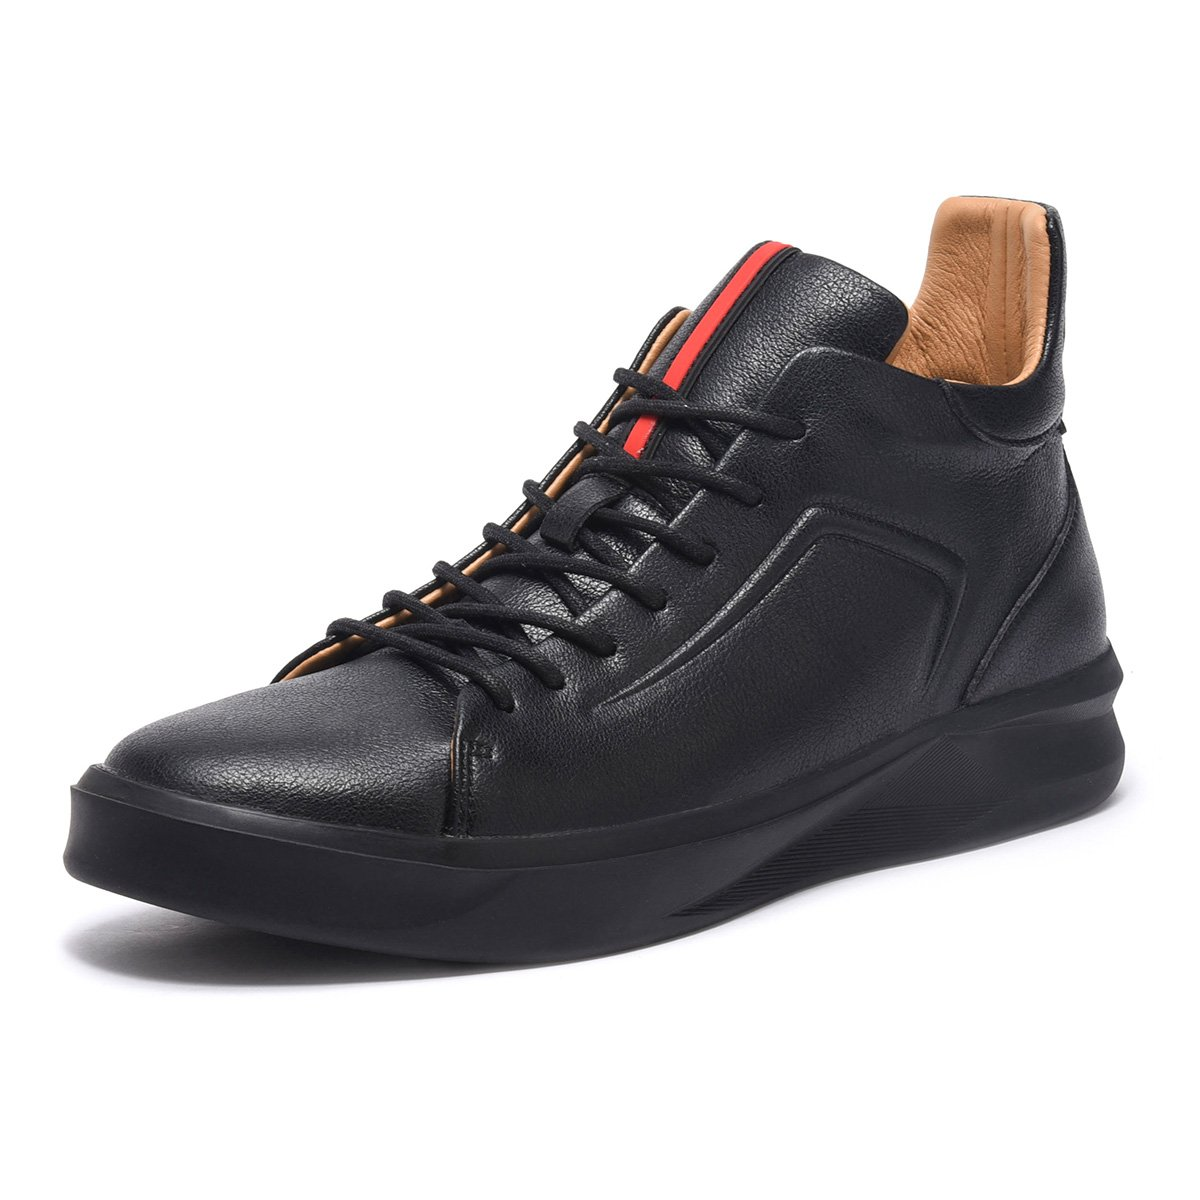 ARTISURE Men's Classic Black Genuine Leather High-Top Casual Sneakers Fashion Ankle Boots 10 M US SKS-1019HEI100